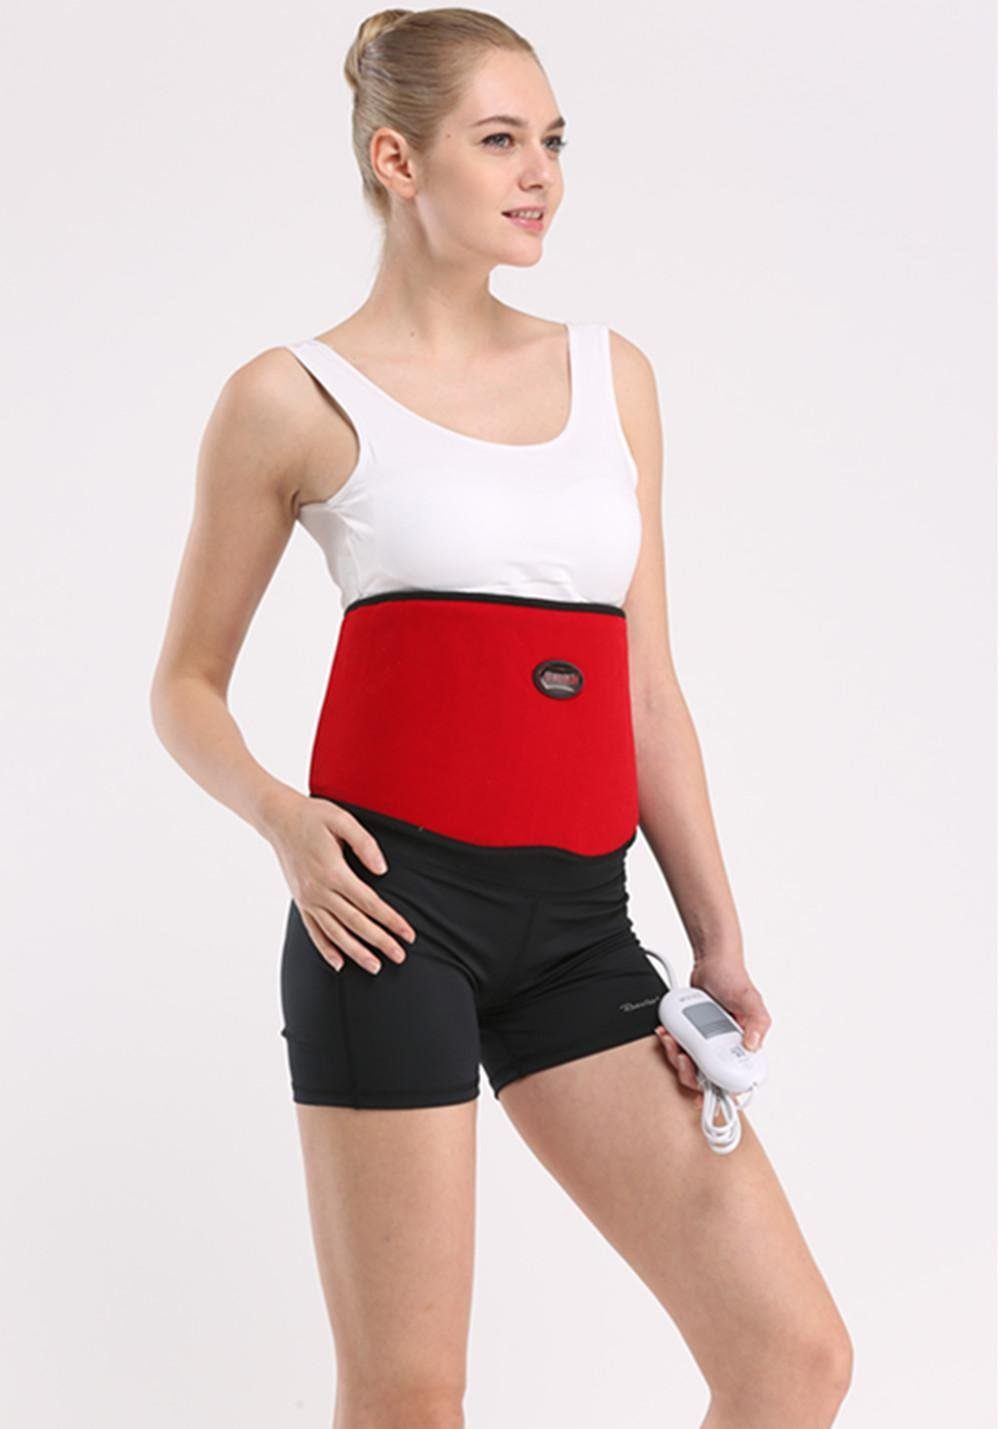 Electric heating Keep warm Waist band ,Thermal therapy to warm the waist, Relieve waist soreness , 001